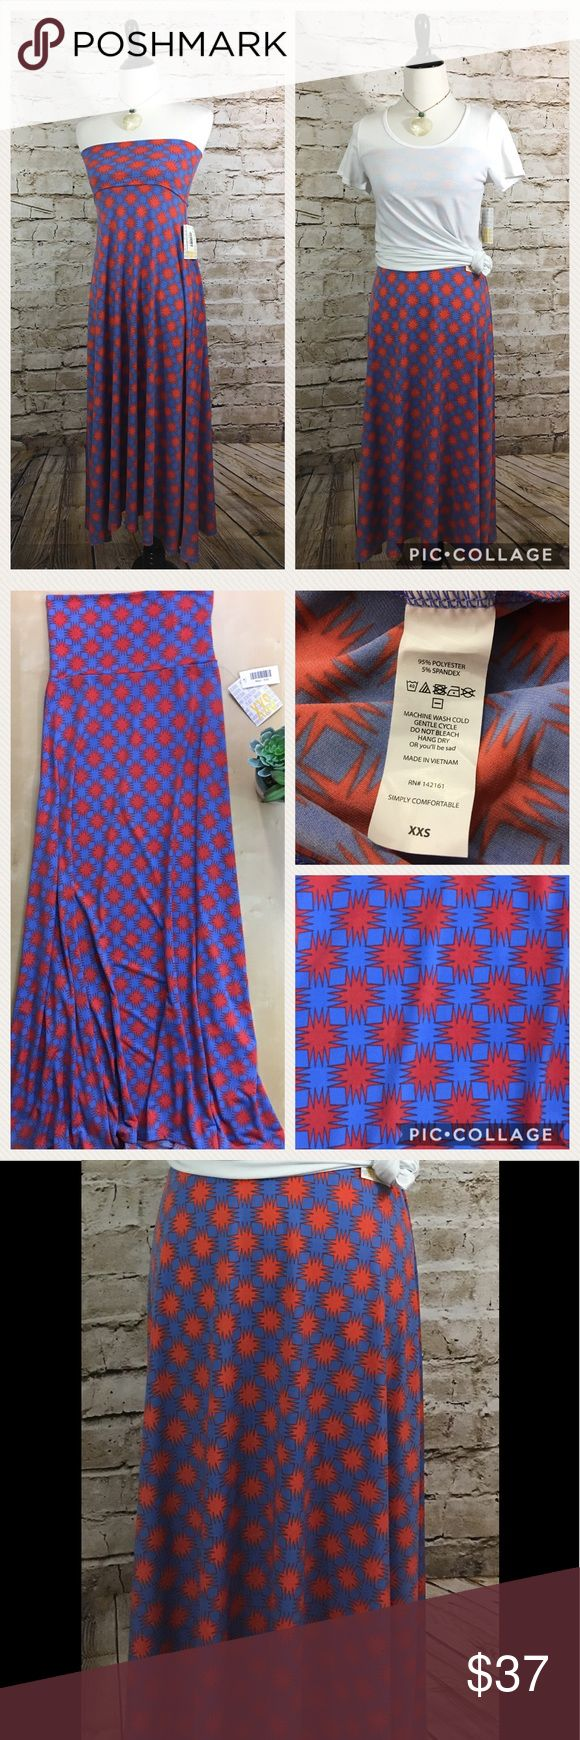 "LuLaRoe XXS Maxi Skirt NWT No flaws, periwinkle and orange hashtag print. Floor length flowing skirt with wide waist band. Easily converts to tube top style dress. Great for layering. Transitions effortlessly from day to night.  Size XXS fits 00-0 Waist: 13"" Length: 41"" Please review all photos thoroughly  Feel free to ask questions  🚫trades 🚫modeling requests  👍🏻reasonable offers welcome! LuLaRoe Skirts Maxi"